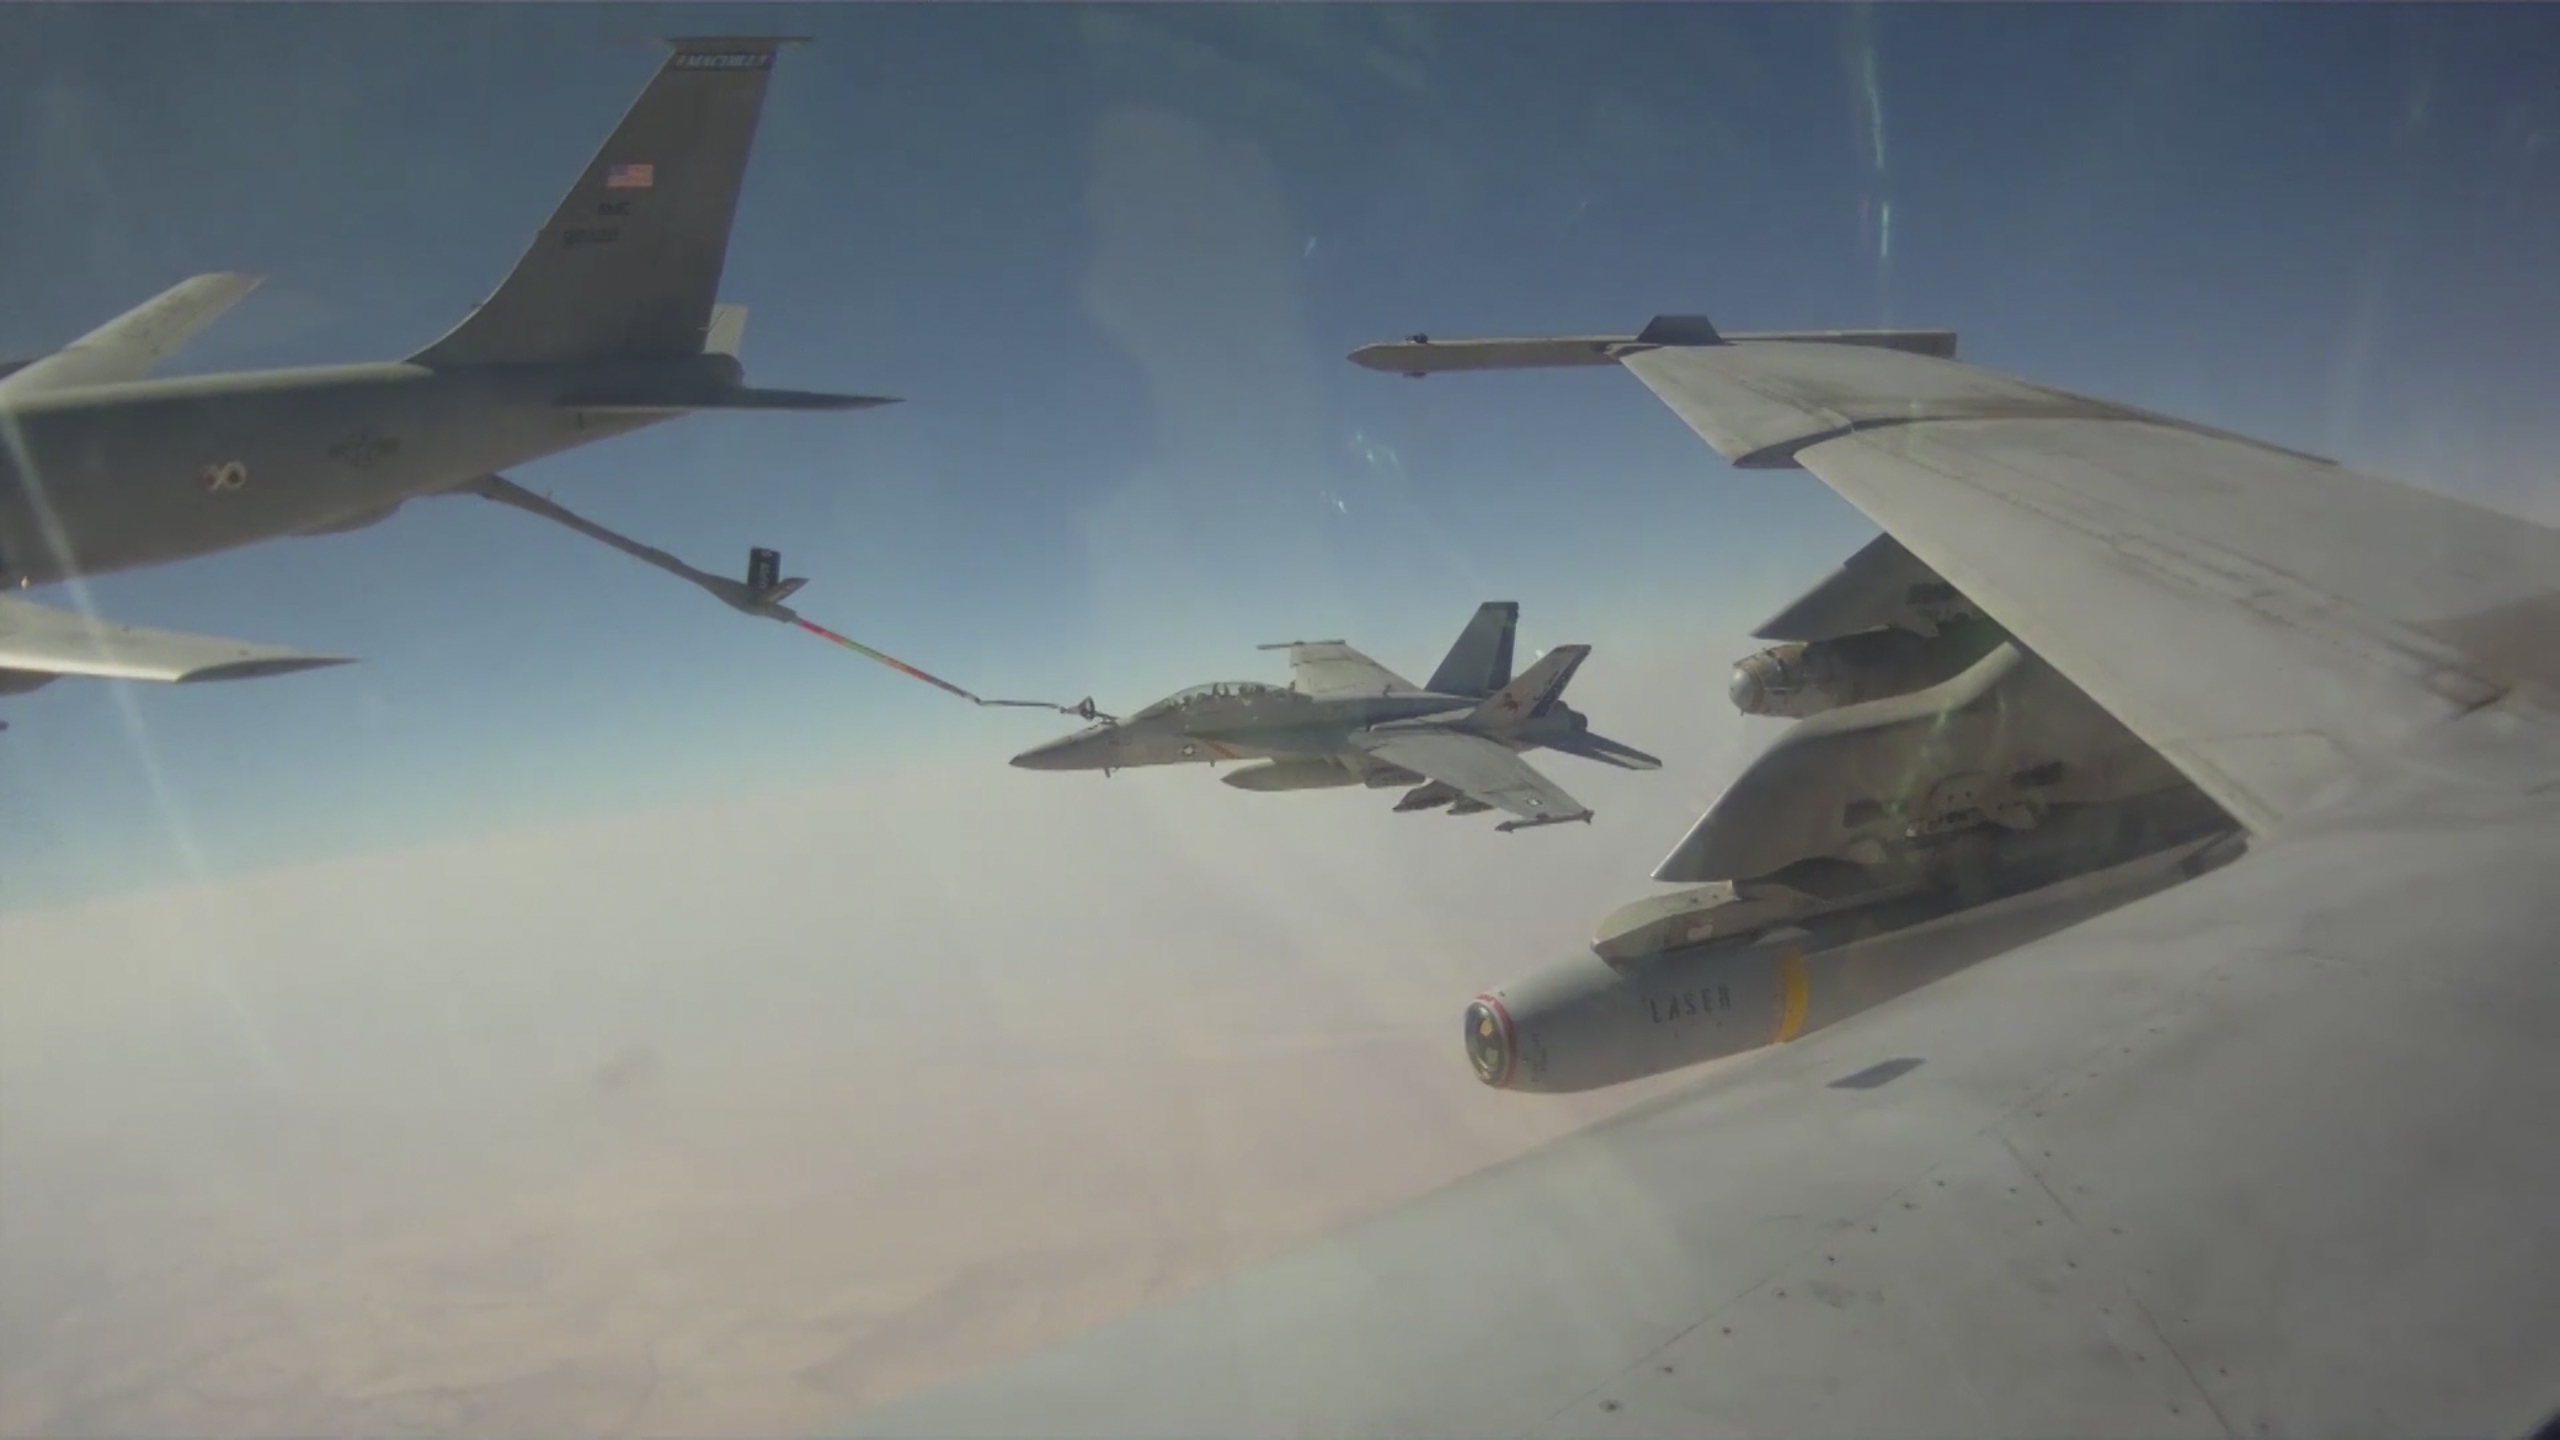 A still image captured from U.S. Navy cockpit video shows an F/A-18F Super Hornet assigned to the Fighting Black Lions of Strike Fighter Squadron (VFA) 213 in a mid-air refueling.